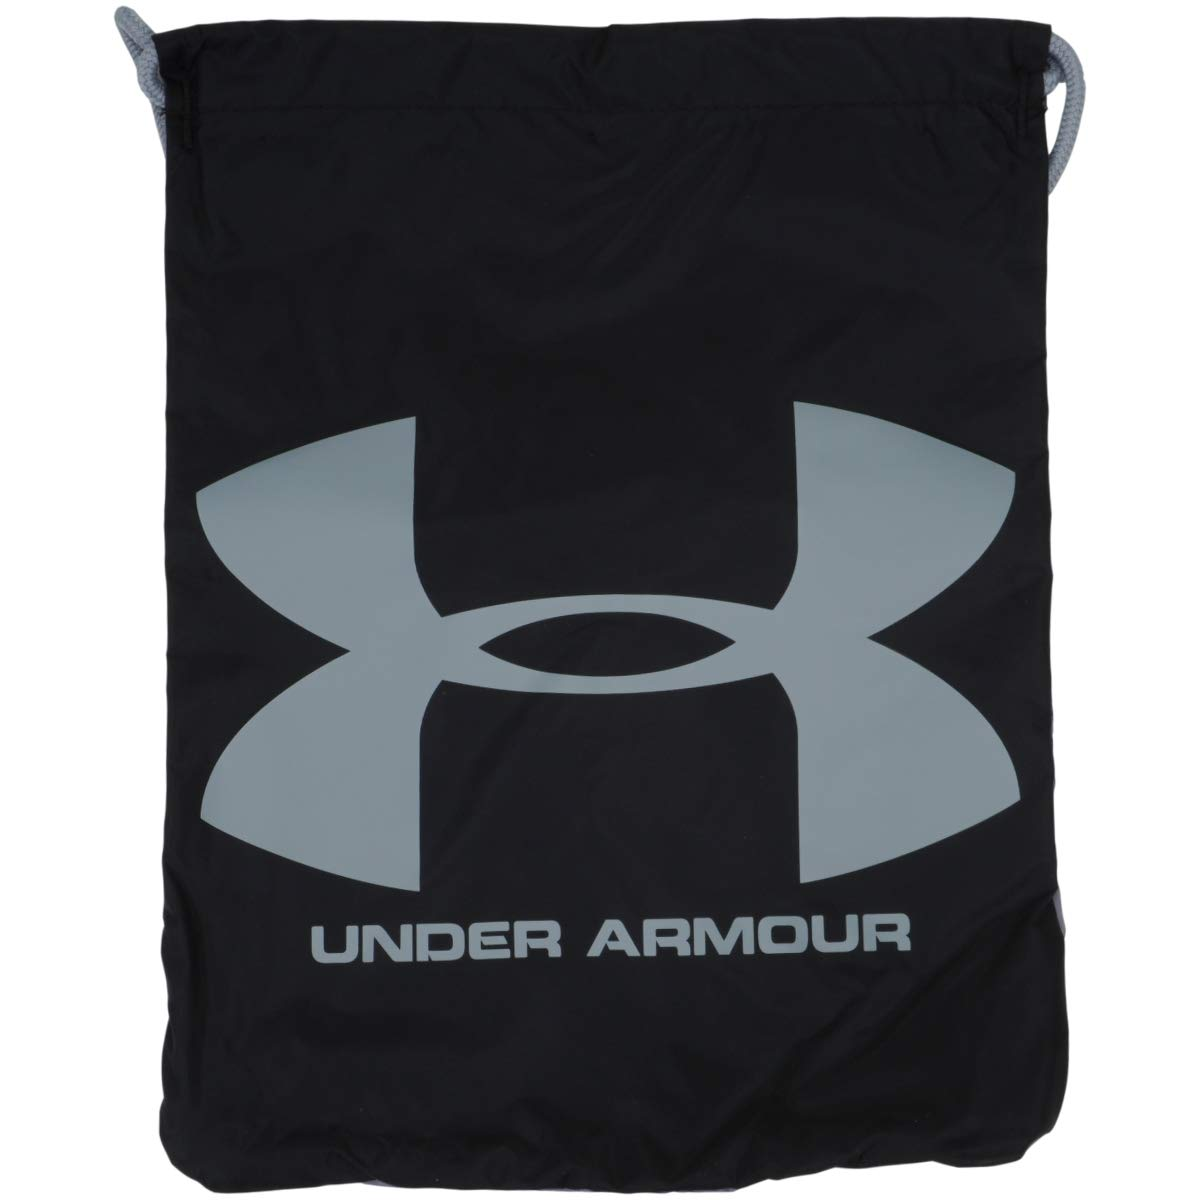 Under Armour Unisex-Adult Ozsee Backpack, Black/Black/Steel (005), One Size